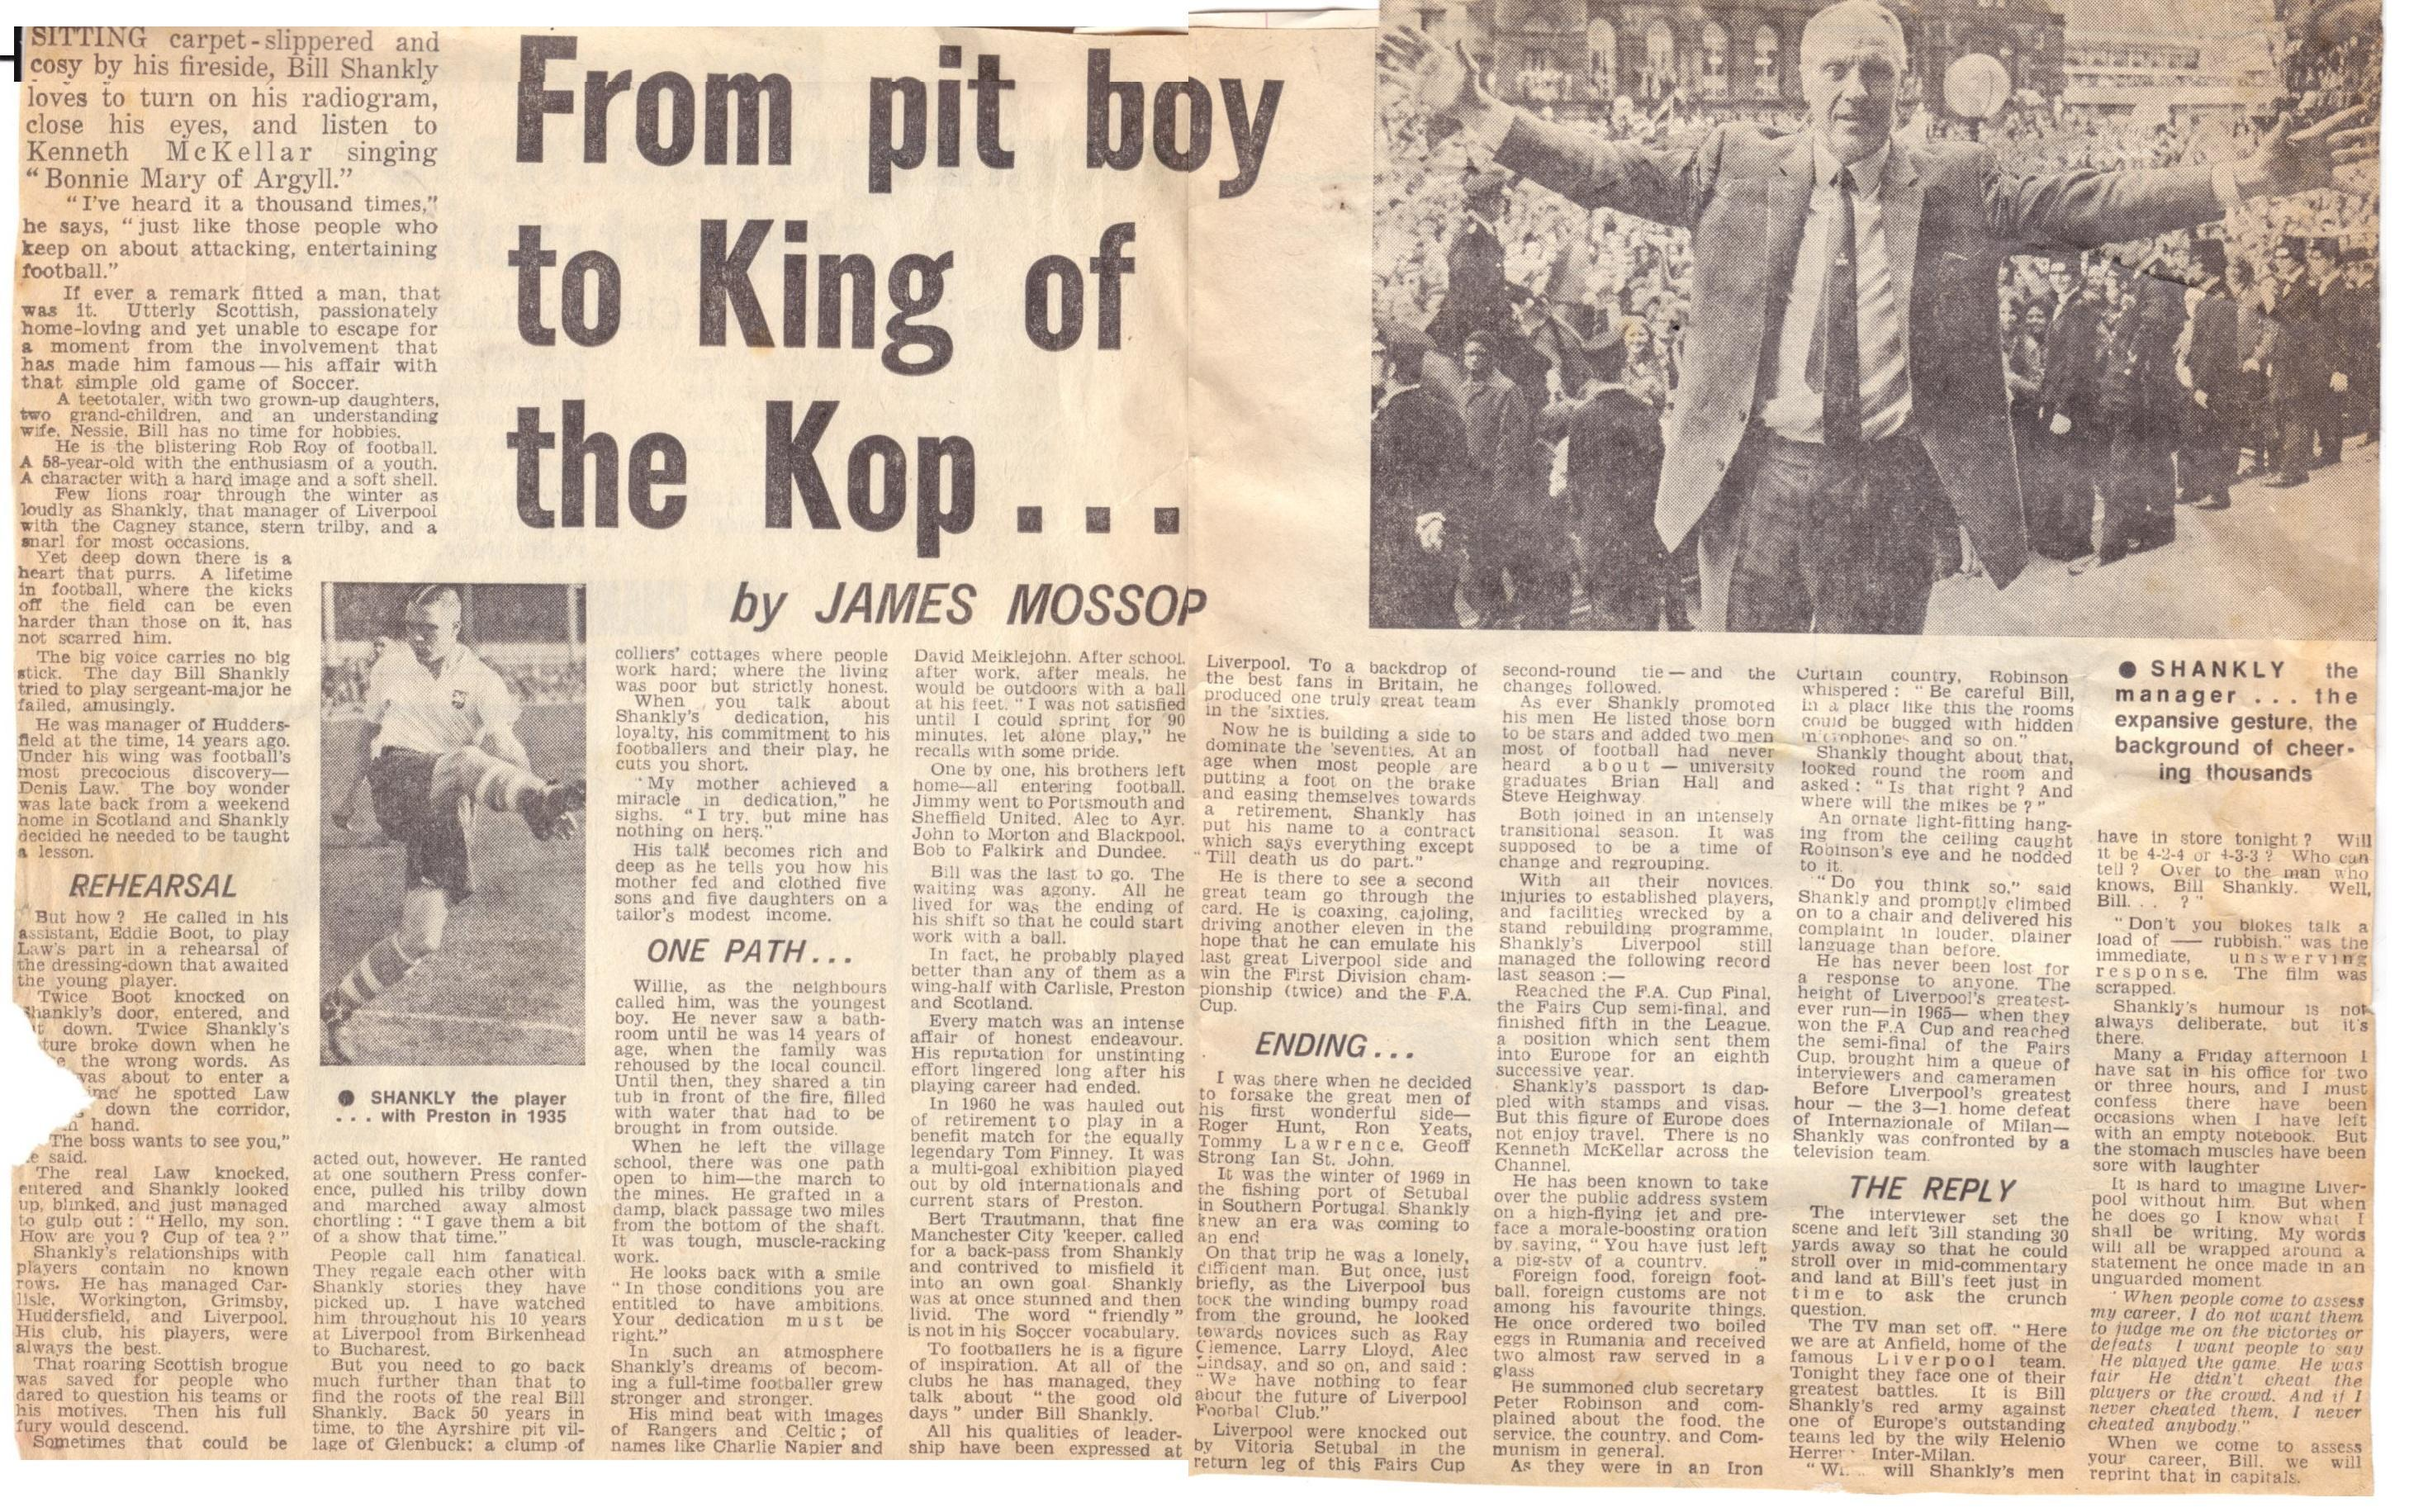 From pit boy to King of the Kop - 1969/70